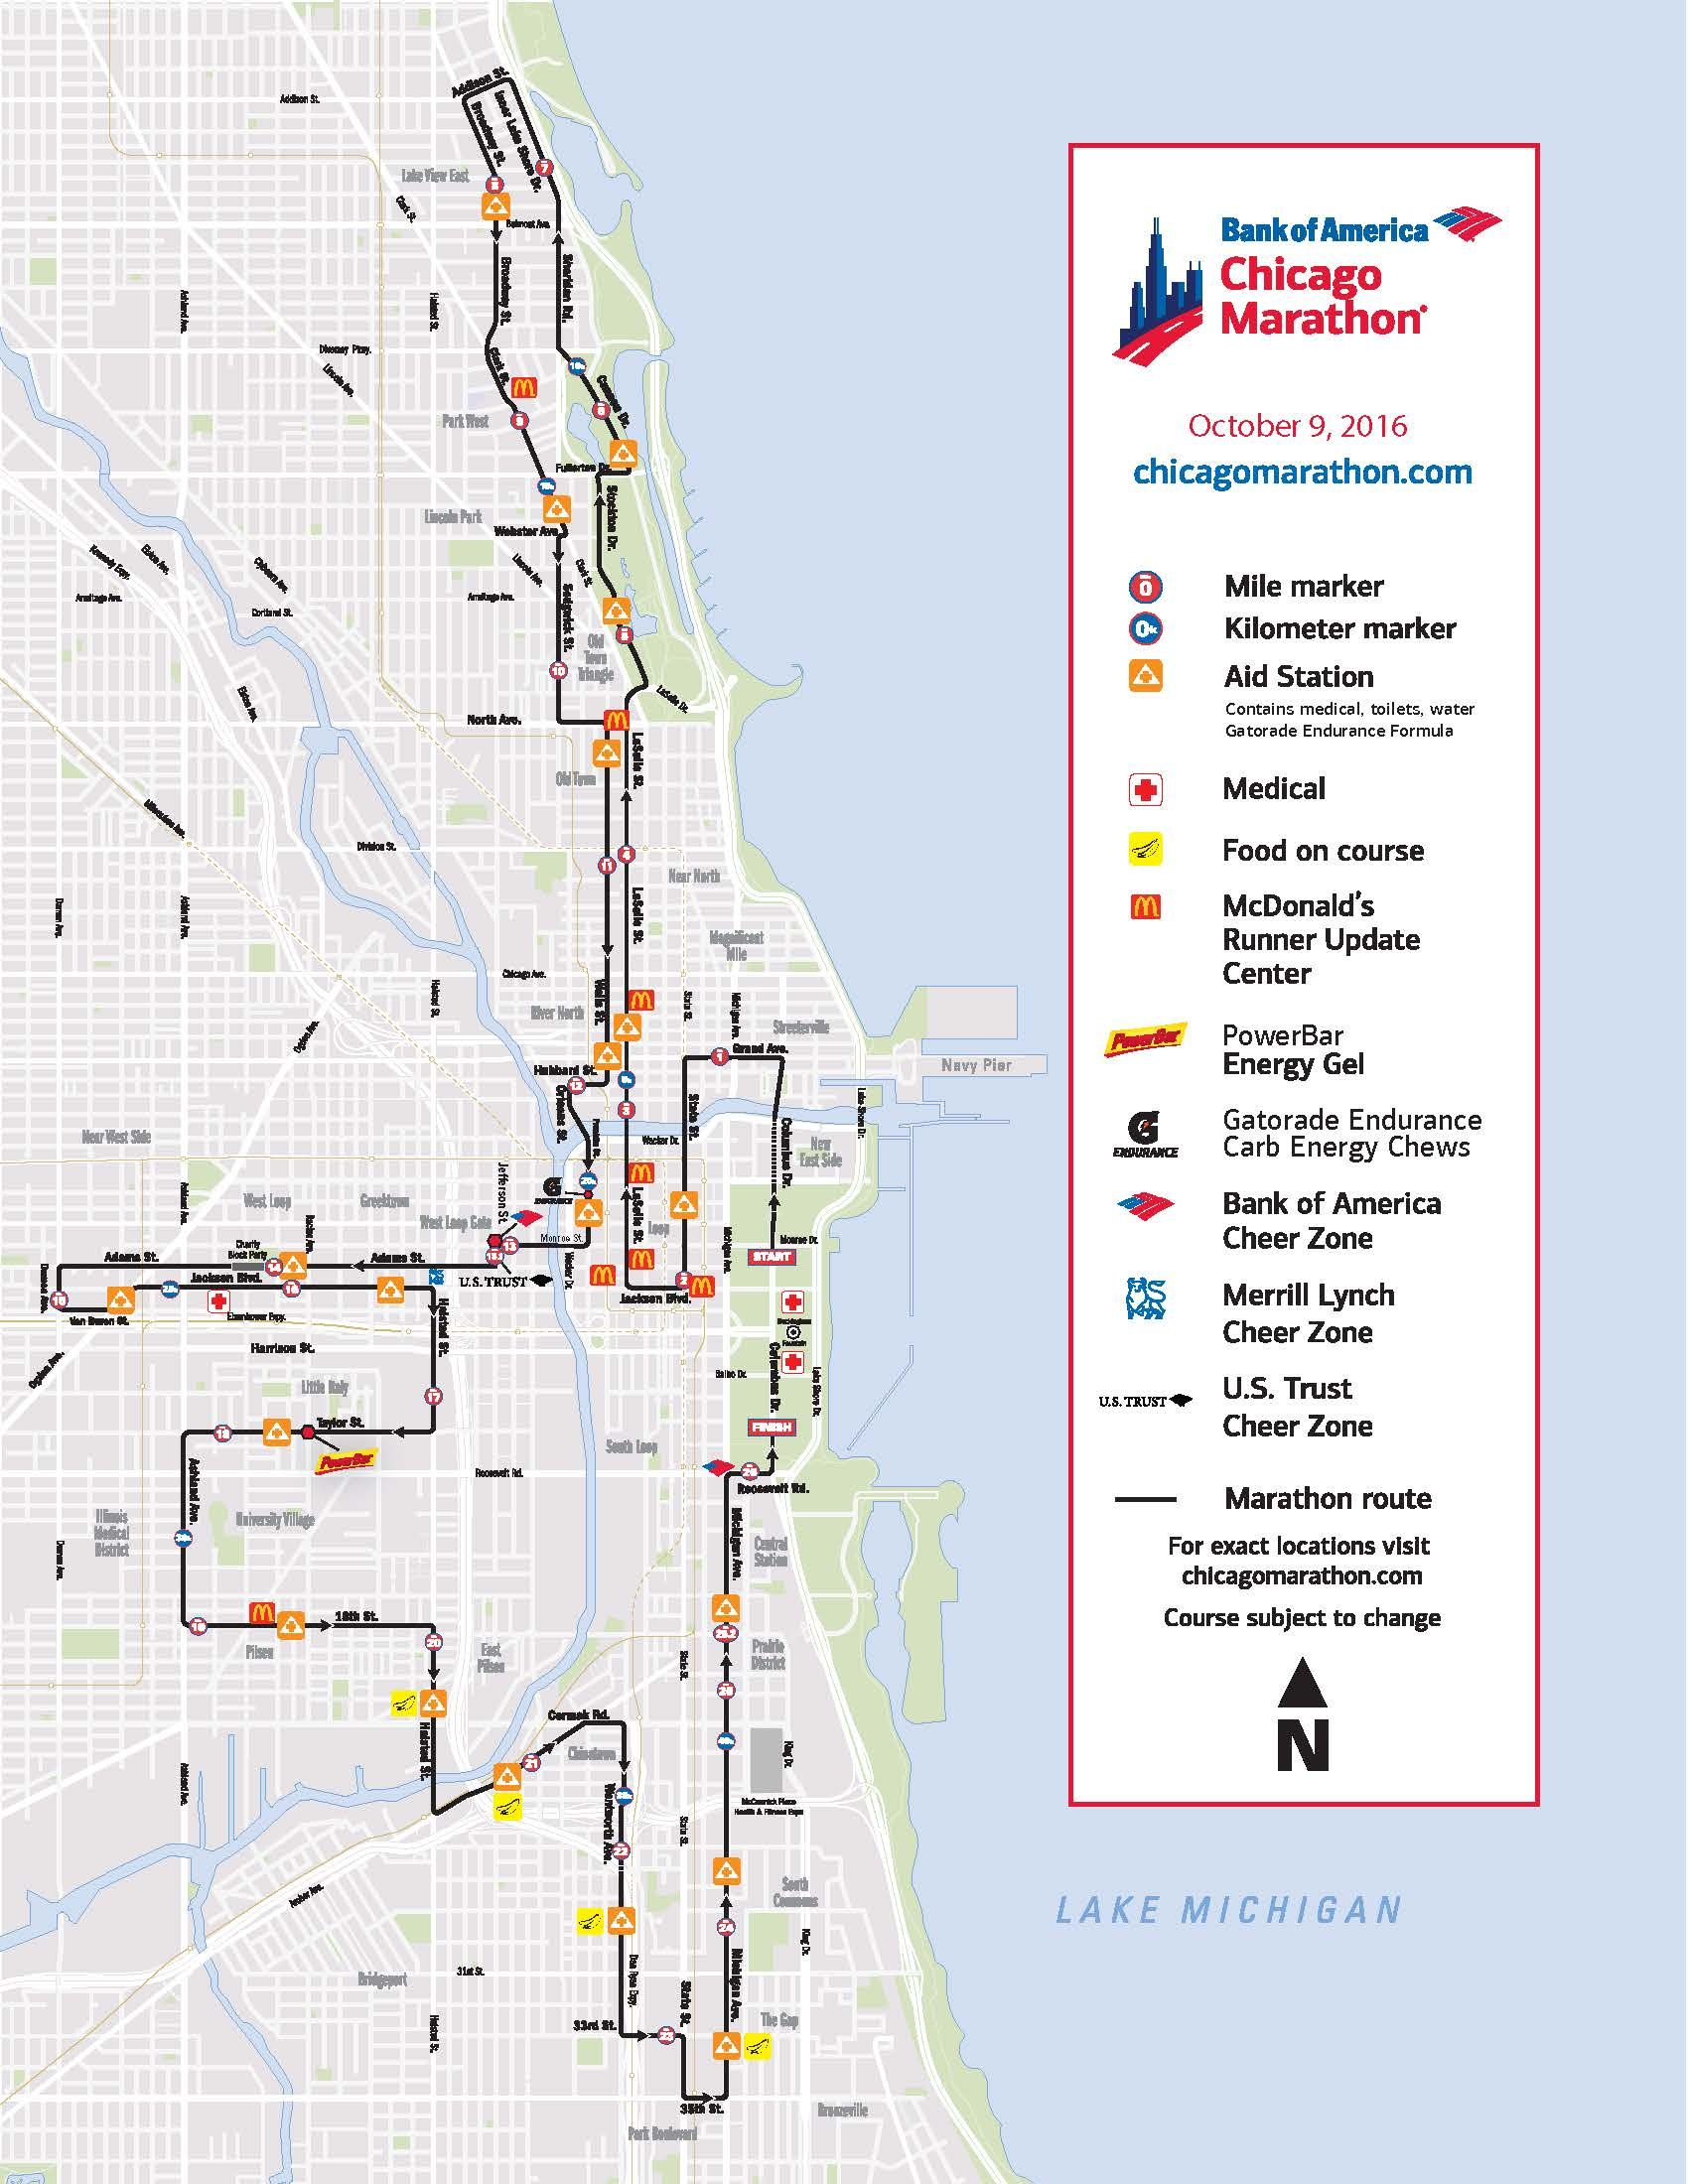 Chicago Marathon Usa Map Usmap Map For Traveling To USUSA - Chicago on a us map